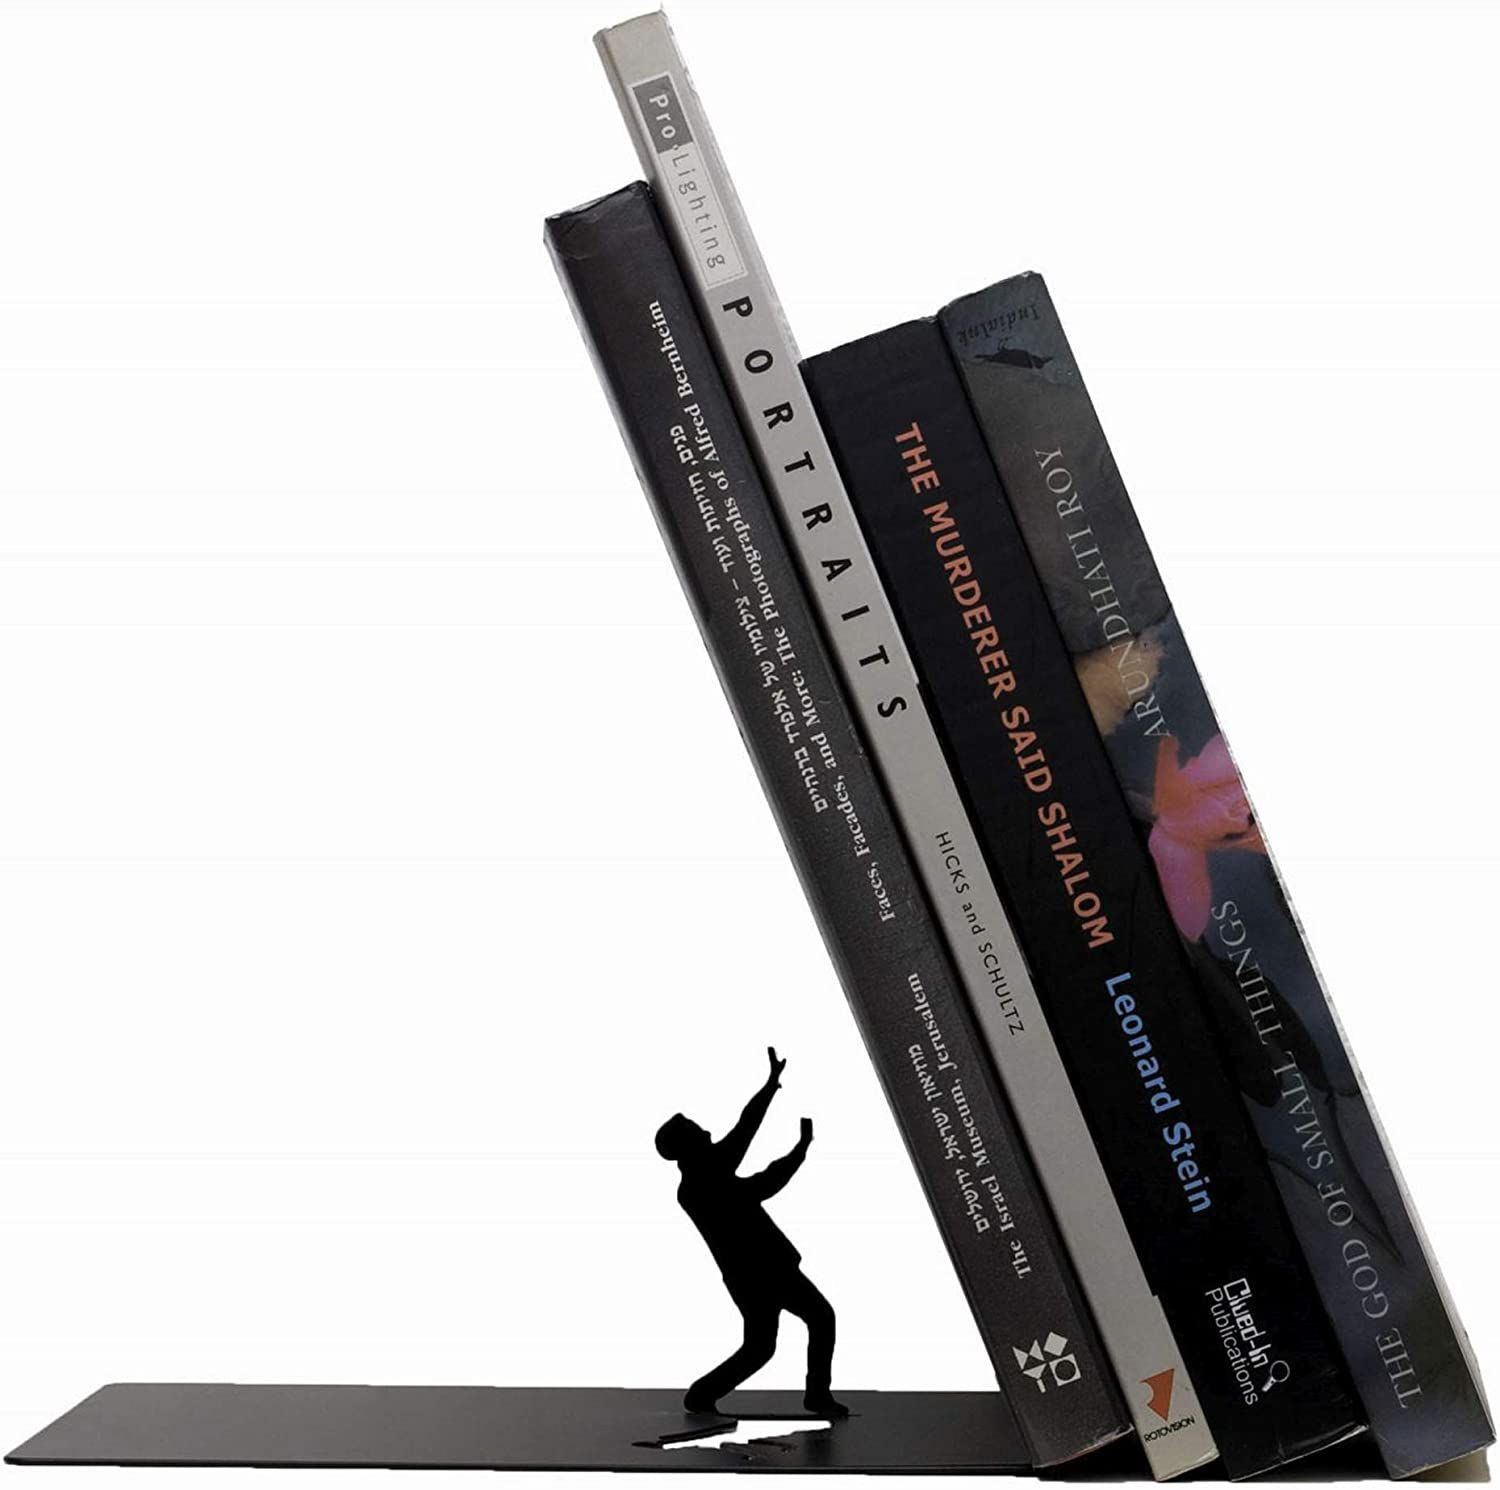 Amazon Com Artori Design Premium Heavy Duty Metal Bookend Black Book Stopper For Office Desk Or For Shelves Funny Decorative Book Ends Book Supporters Desk Decor Library Decor